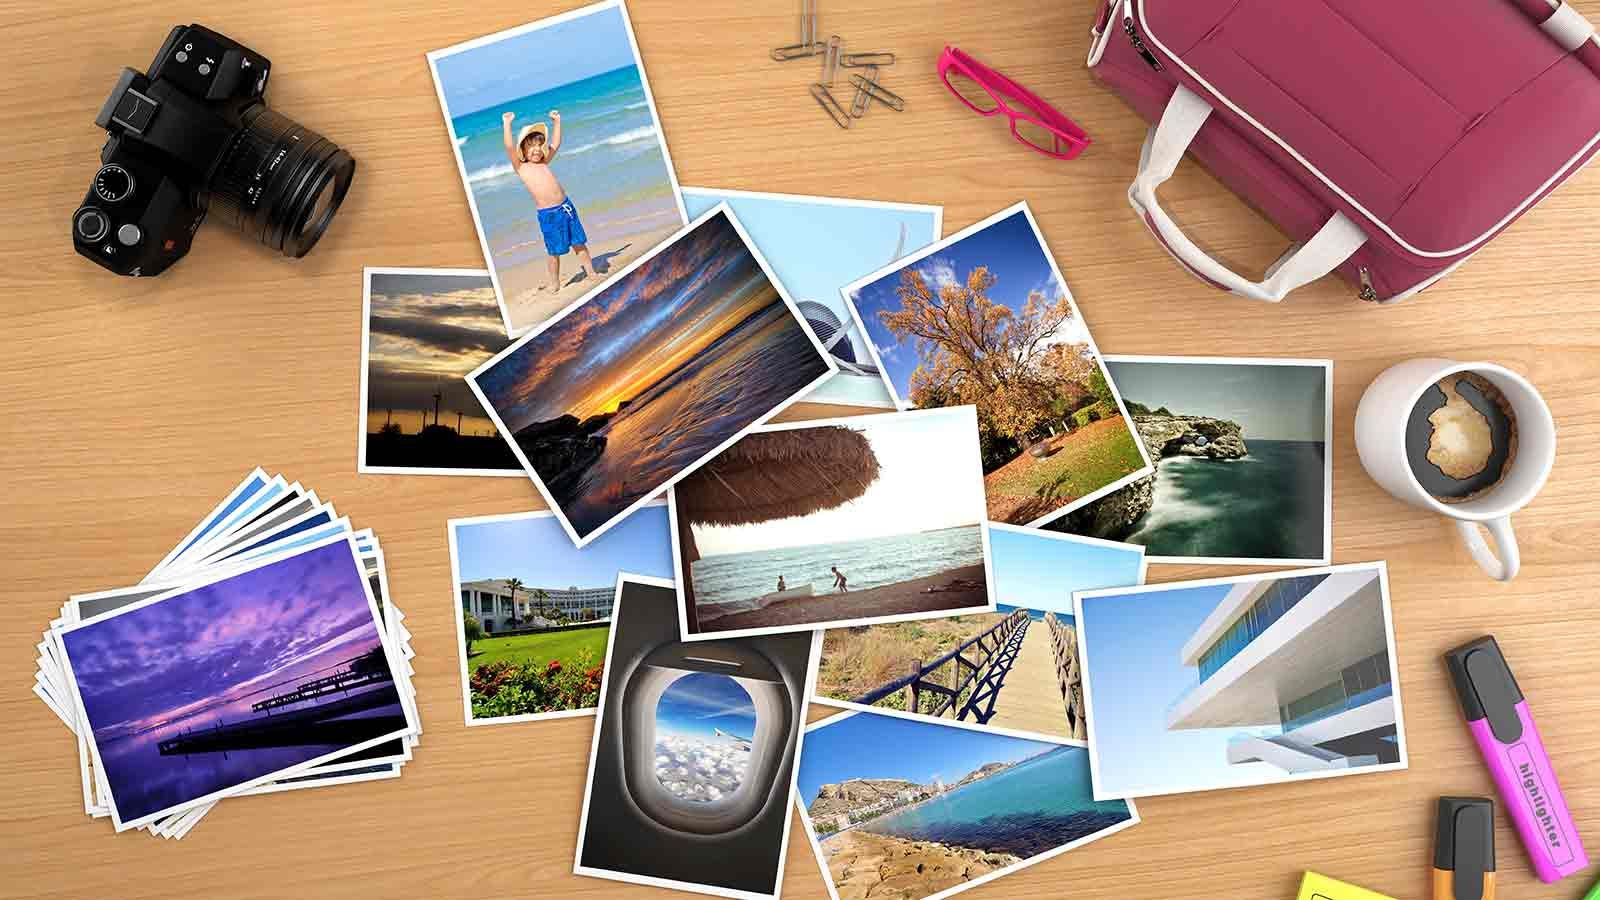 Print photos spread out on a table next to a camera.